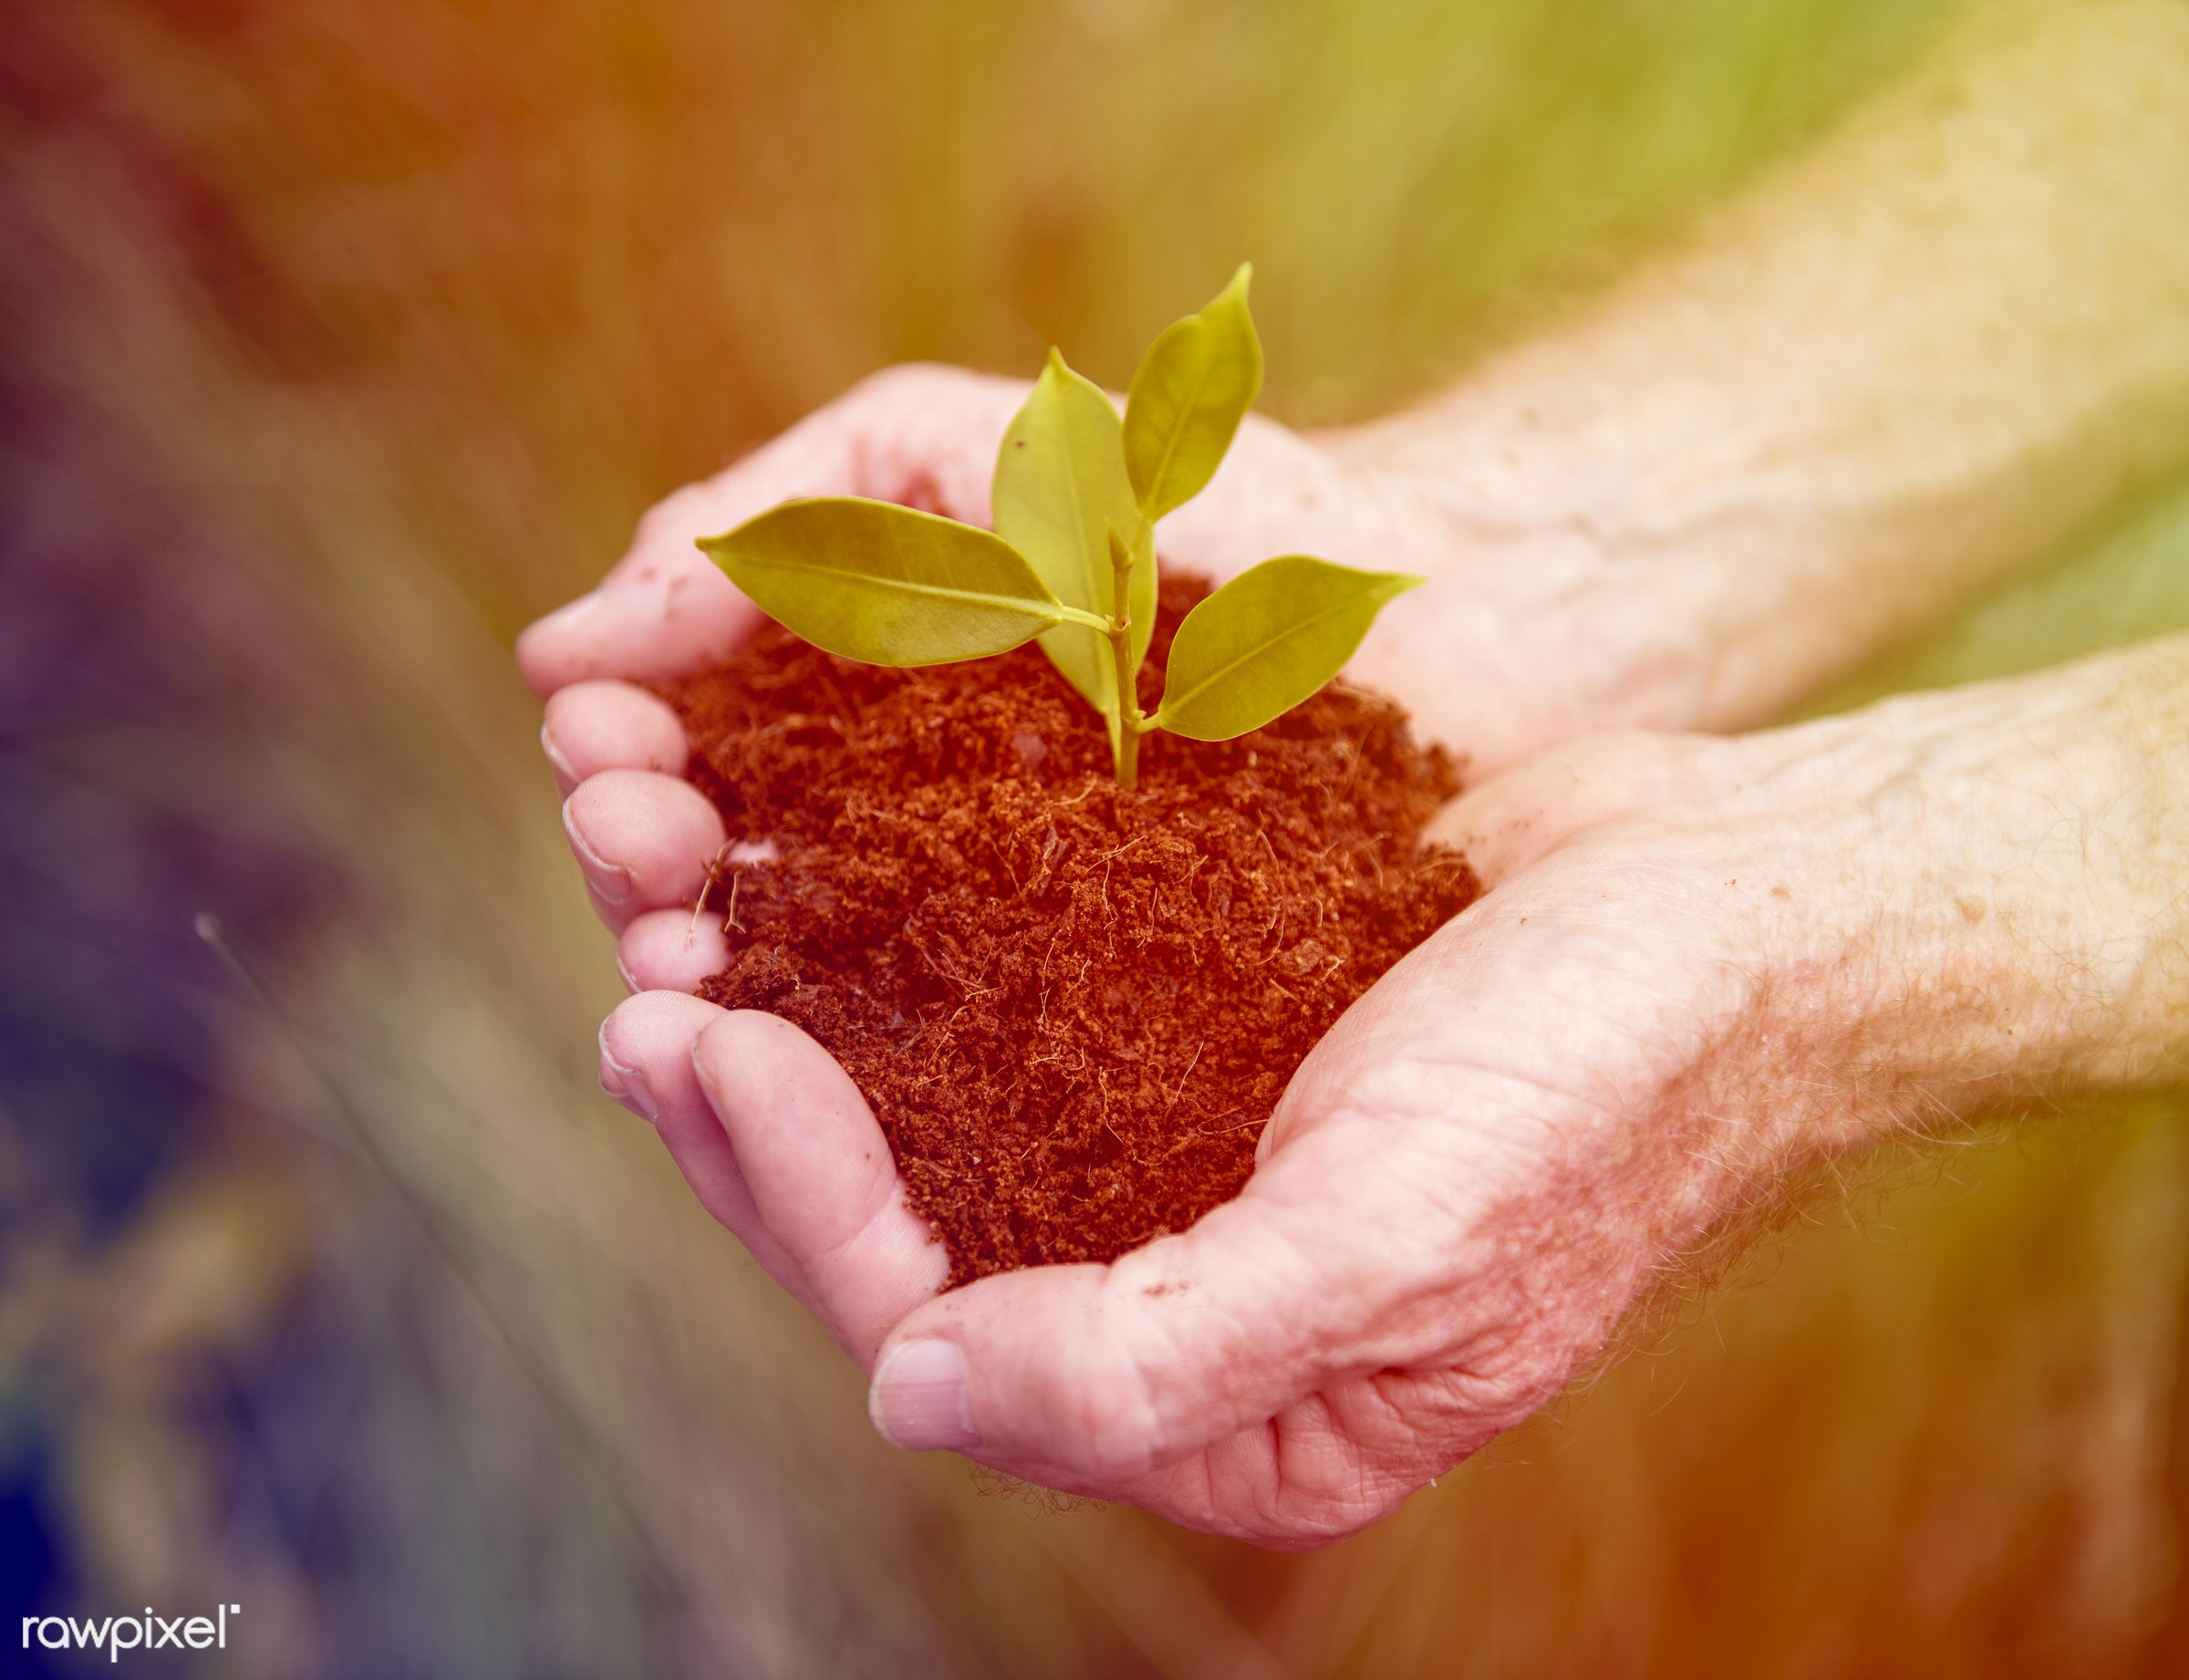 plant, resources, concept, faded, sustainable, vibrant, environmental conservation, planet, environmentally friendly, life,...